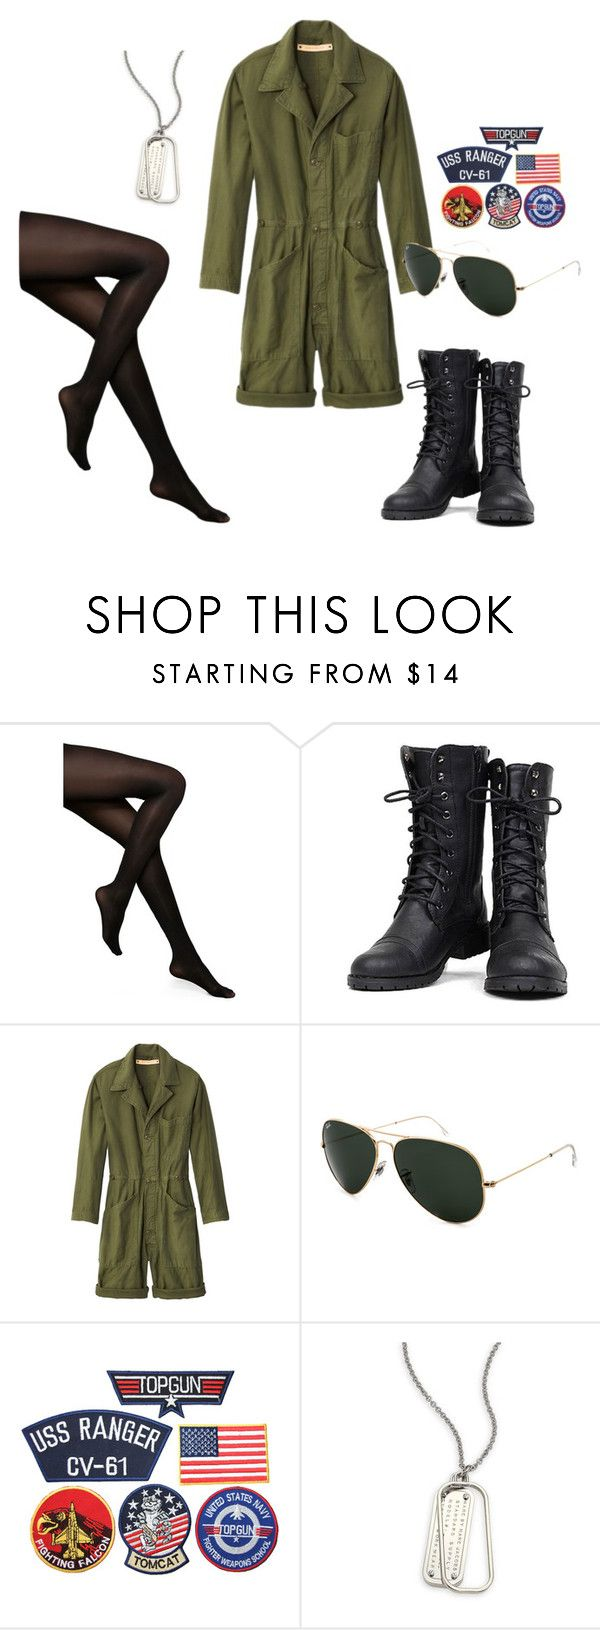 """Halloween Costume Idea- Top Gun"" by jess-str ❤ liked on Polyvore featuring Kate Spade, Nature Breeze, Bliss and Mischief, Ray-Ban and Marc by Marc Jacobs"